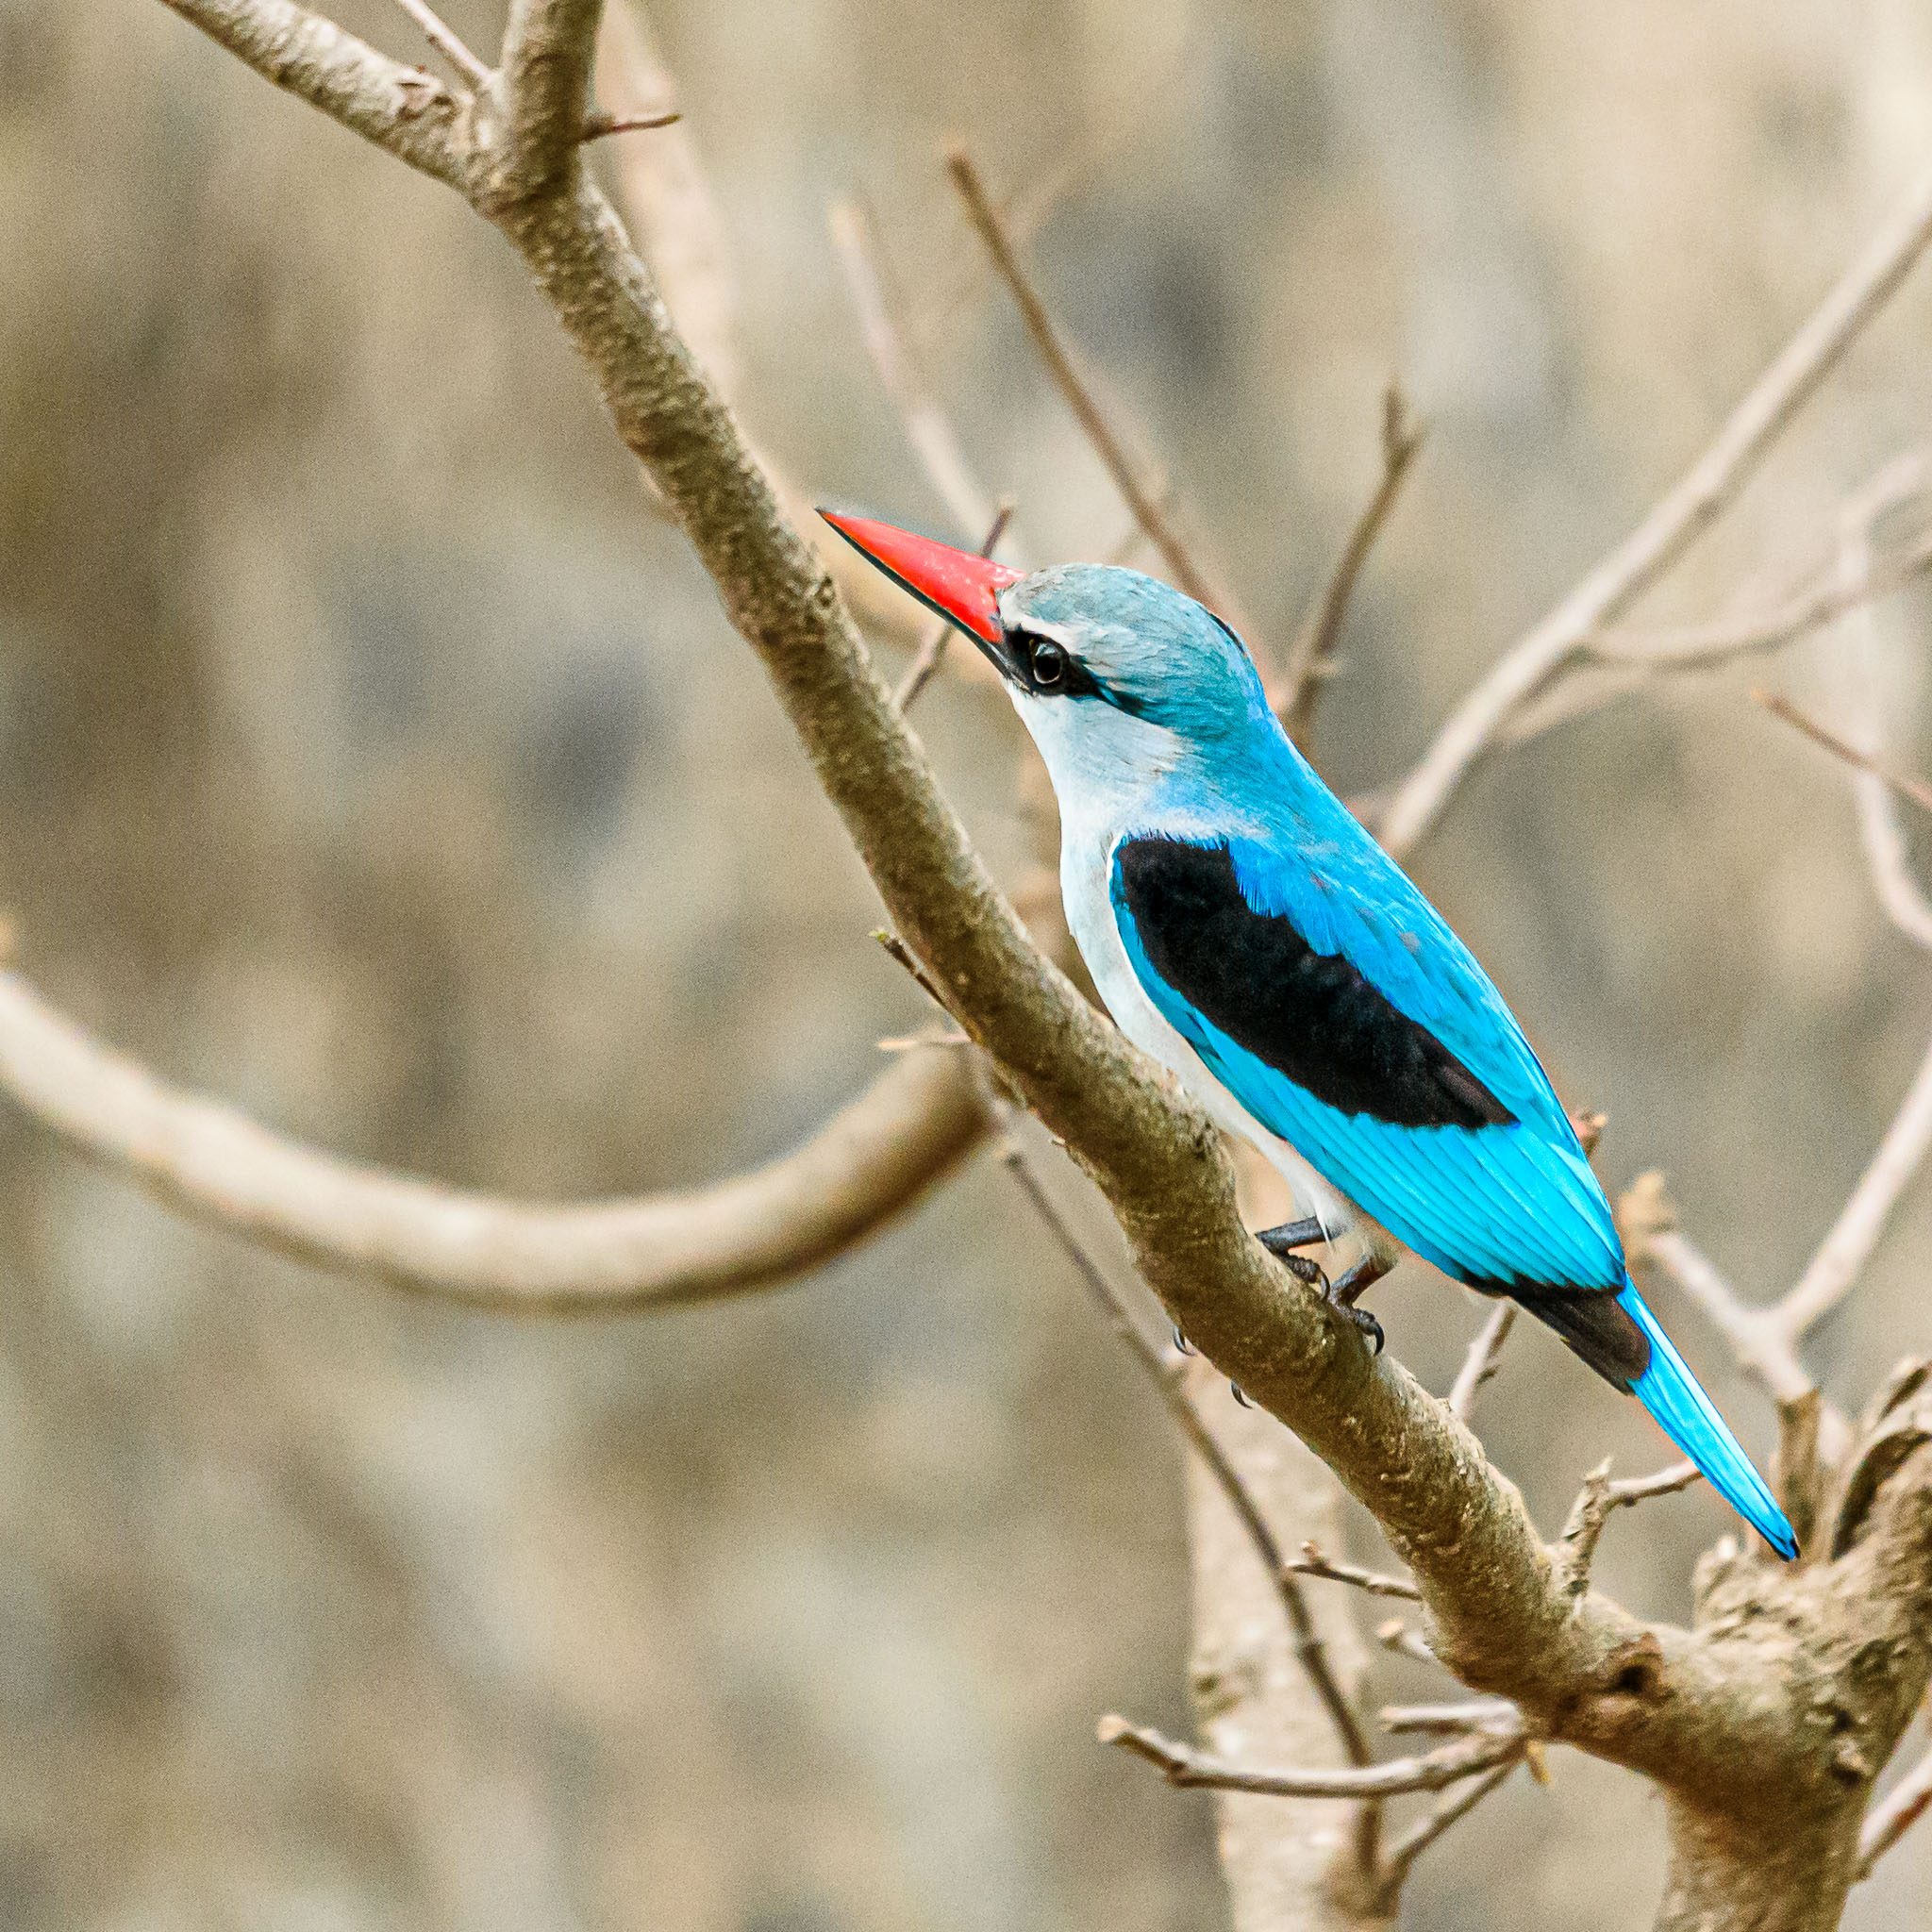 The drought of the last few years in the Kruger has left a lot of rivers dried up. This woodland kingfisher was captured above one of these dry rivers. At the moment he is reduced to 'diving' for insects rather than fish.